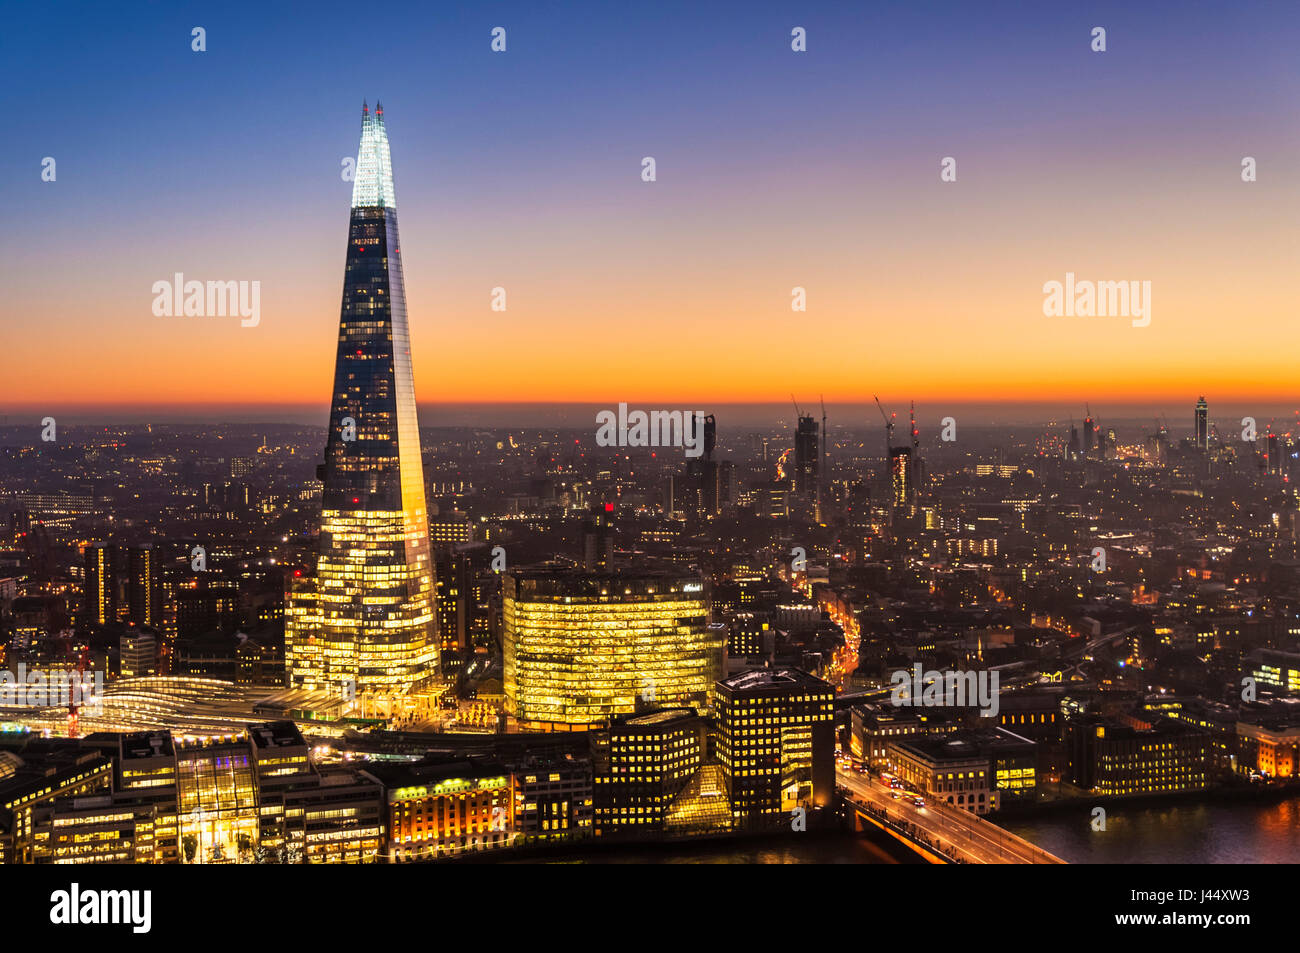 London skyline shard london night The shard london at night sunset sky london skyline night Great Britain United - Stock Image